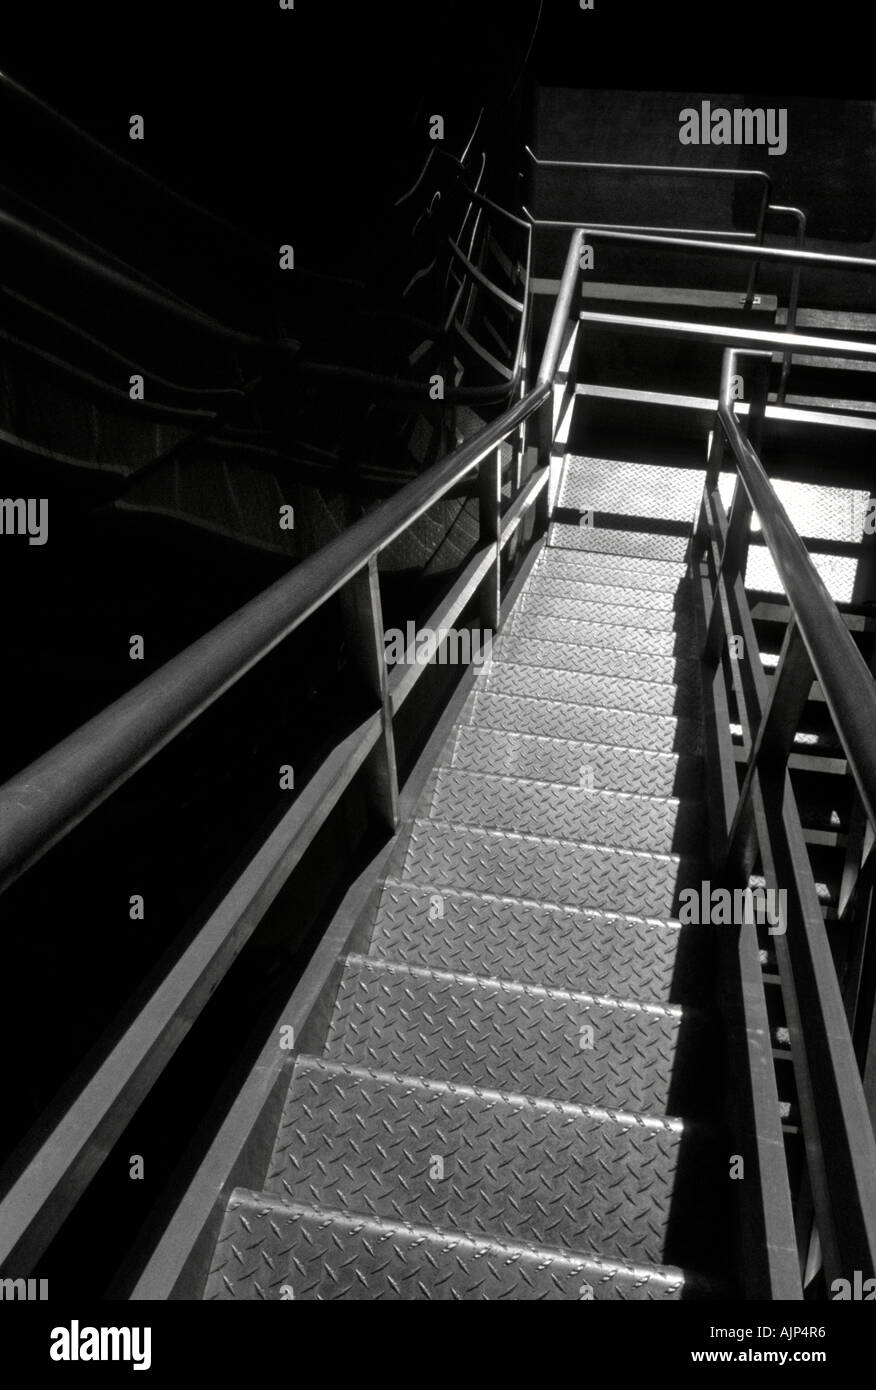 A bright lighted metal stairway leading down - Stock Image